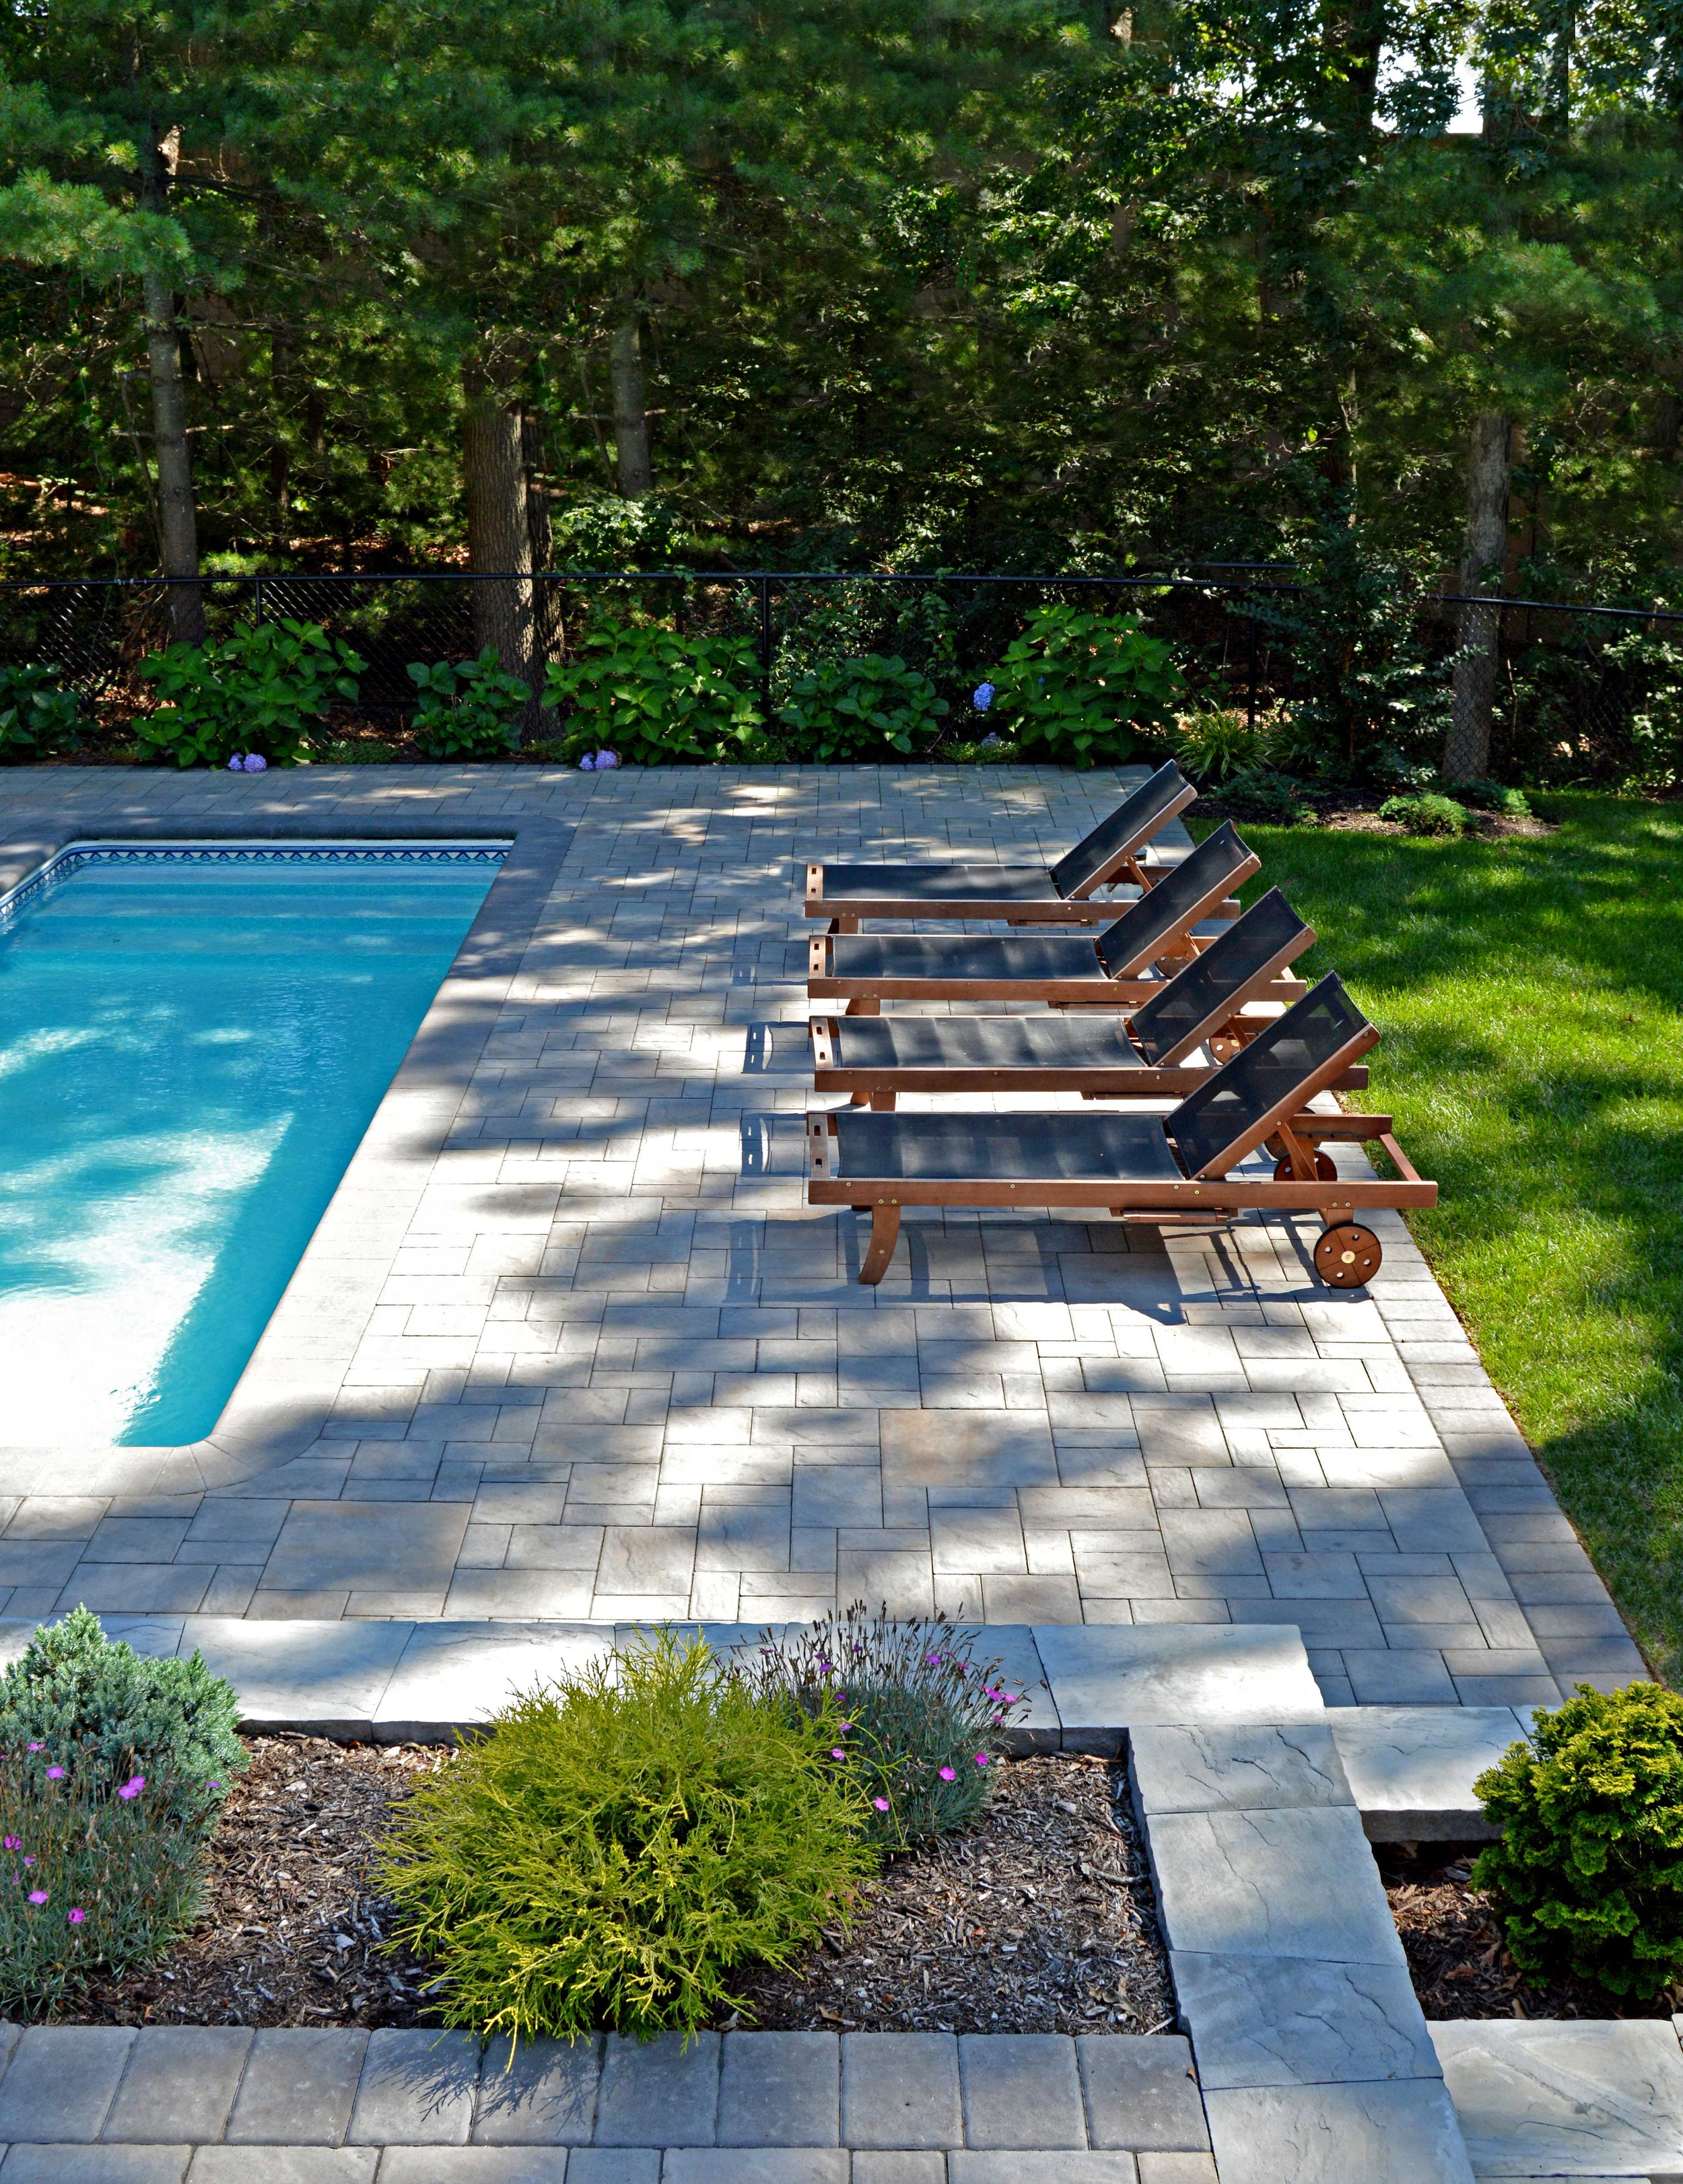 Long Island patio by a pool with lounge chairs in Bethpage, NY